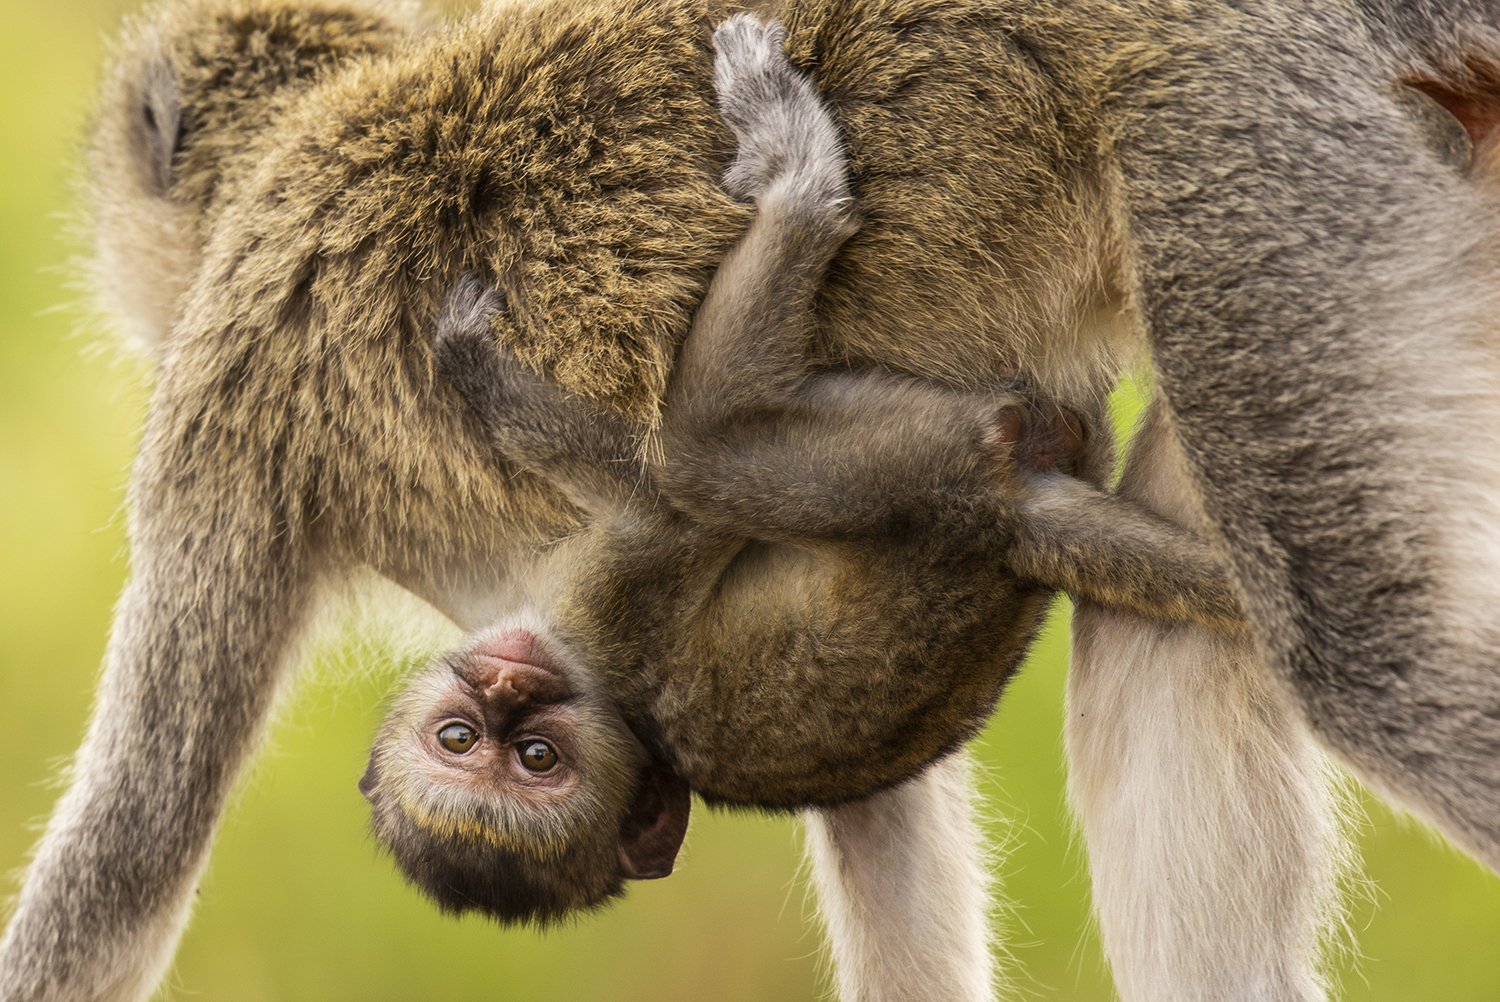 Baby Vervet clings to his mother